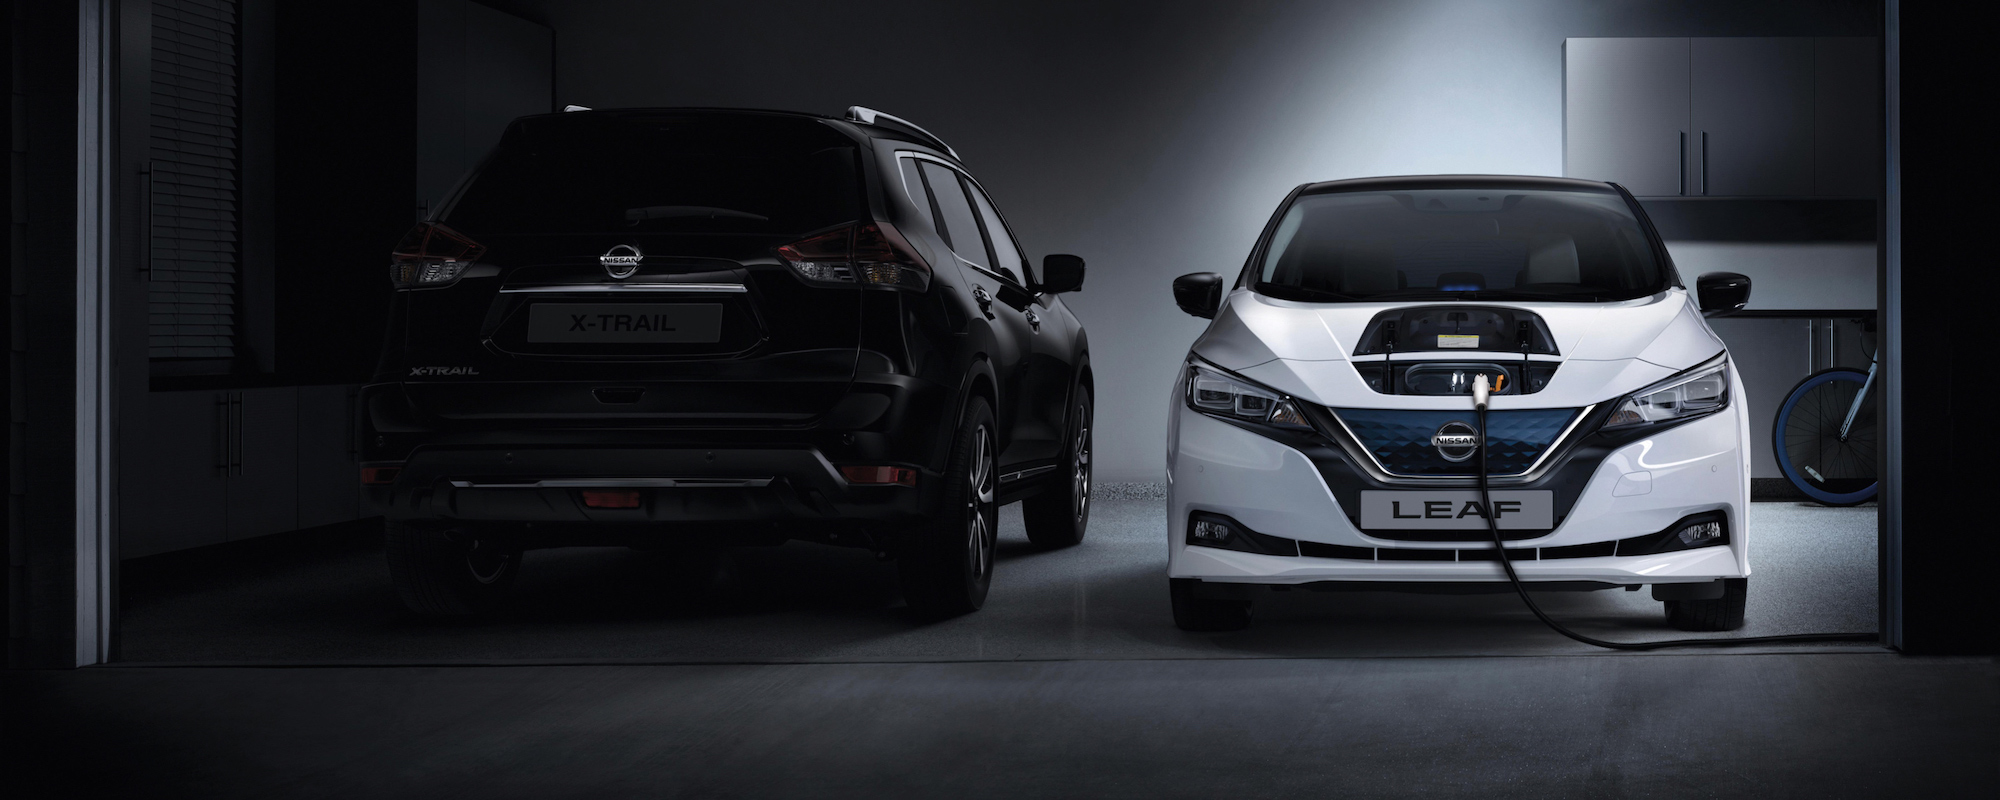 nissan-Leaf-charging-in-a-private-garage